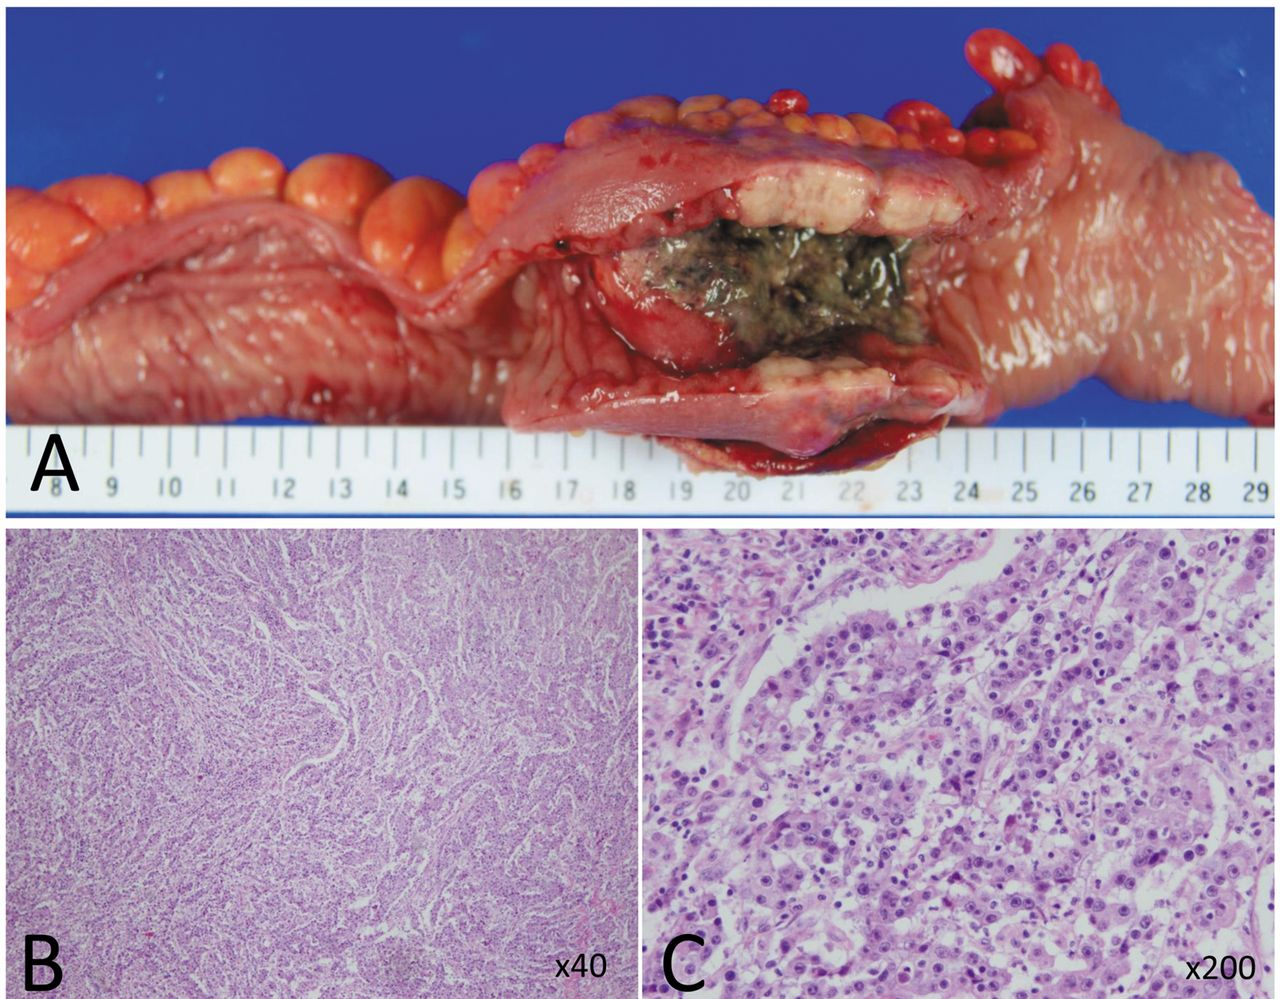 Virchow Lymph Node Metastatic Recurrence Of Sigmoid Colon Cancer With Severe Lymph Node Metastases Successfully Treated Using Systemic Chemotherapy Combined With Radiotherapy